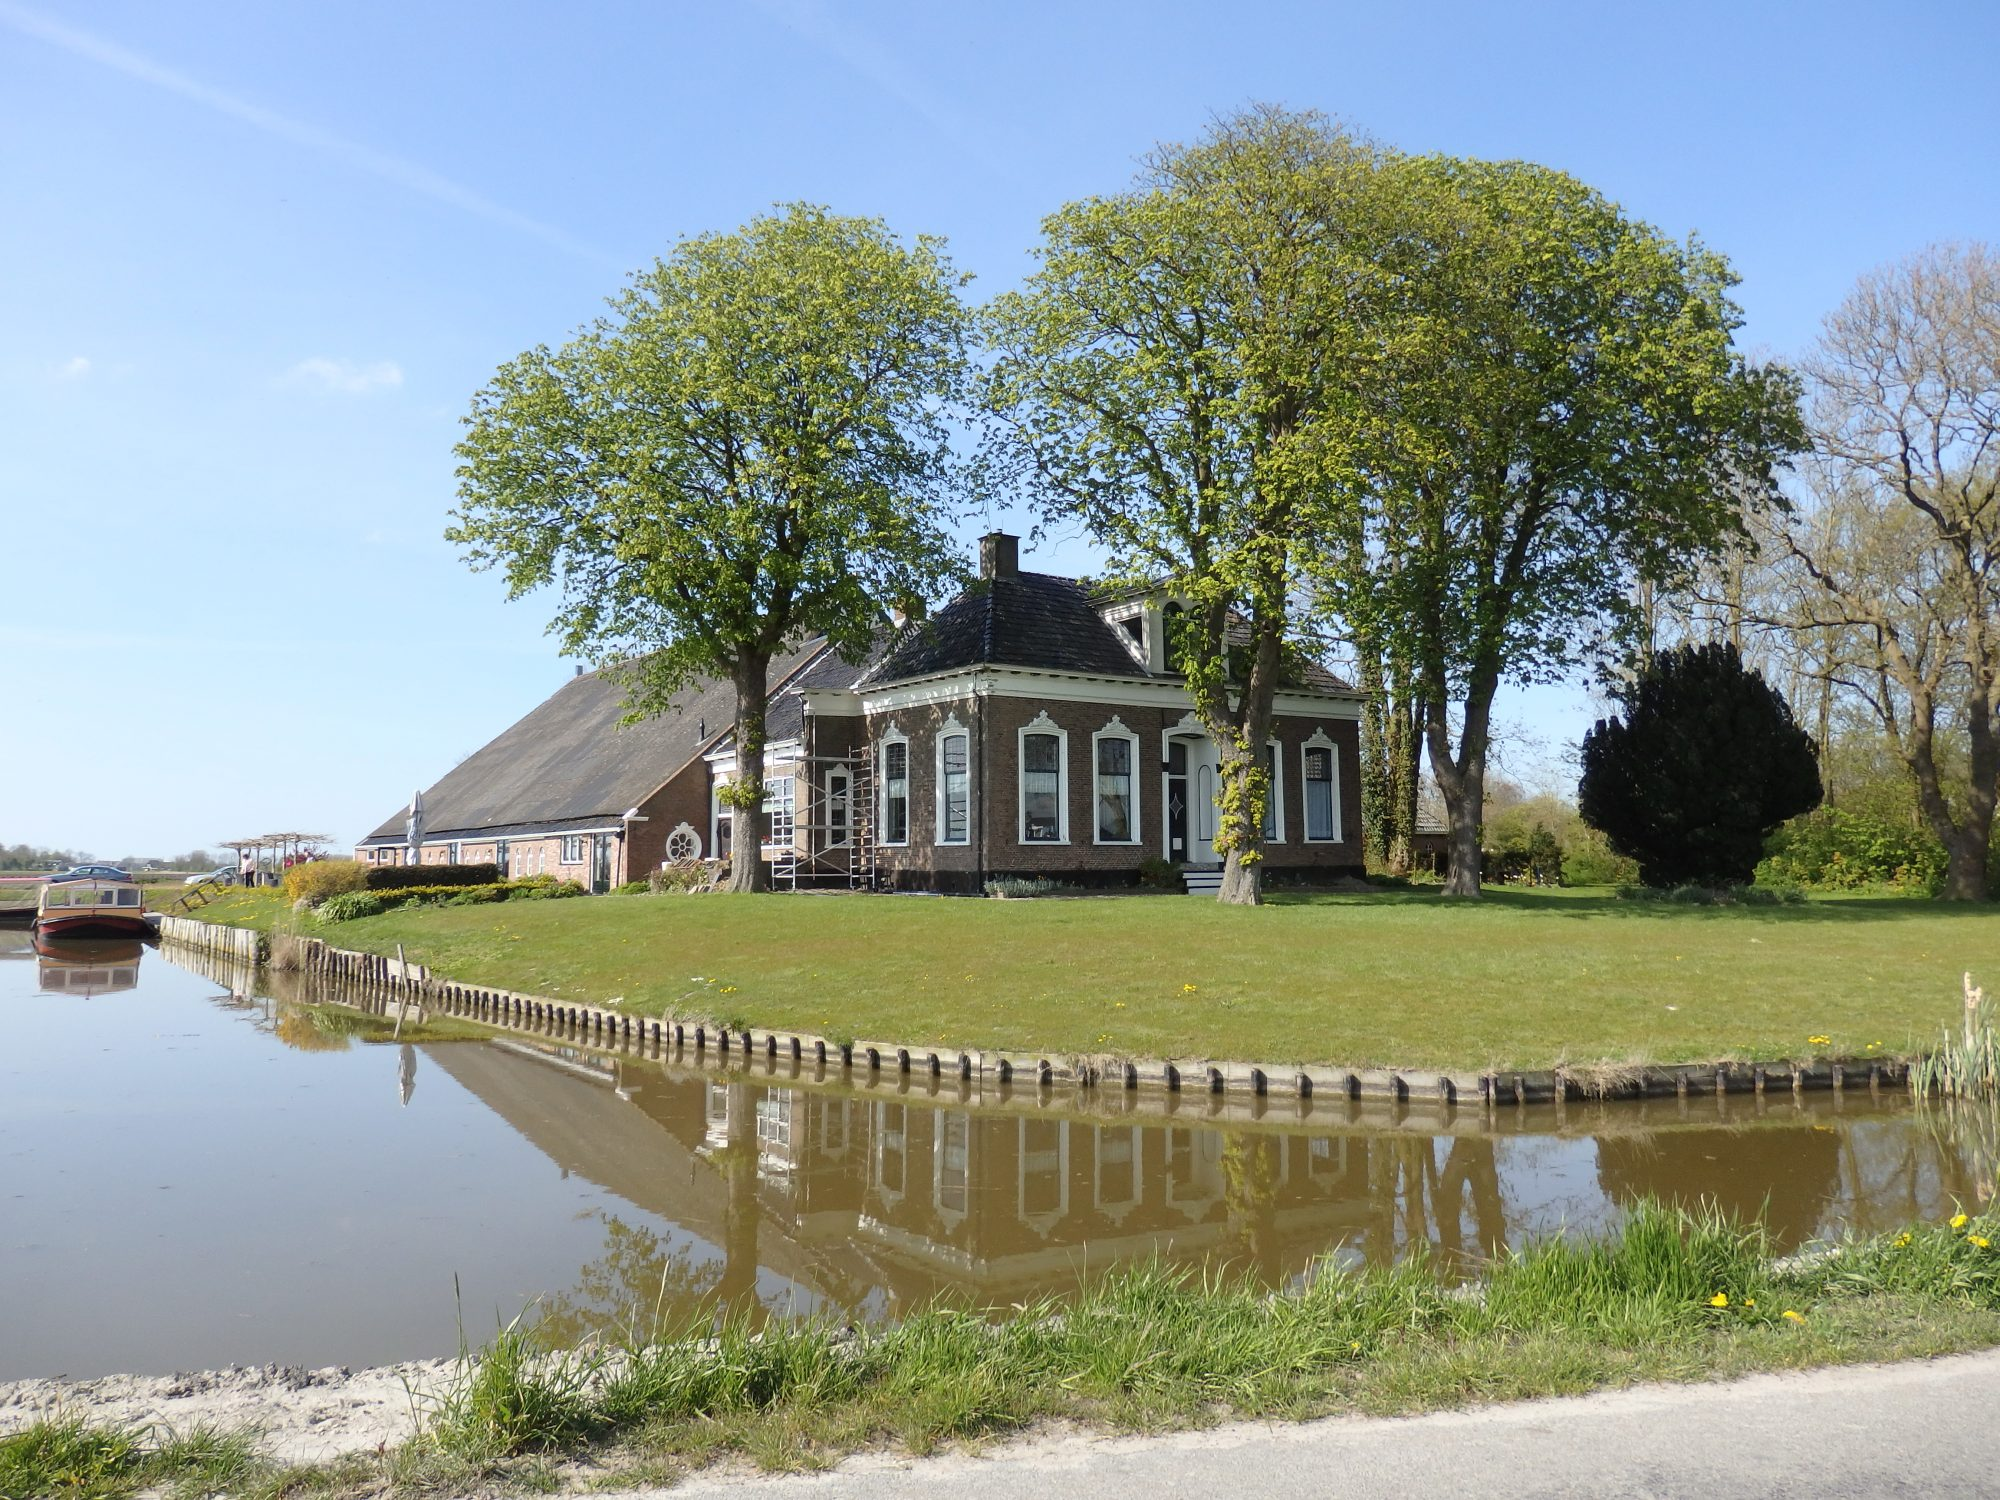 a farmhouse Groningen province. The barn end has been converted to a restaurant of some sort.